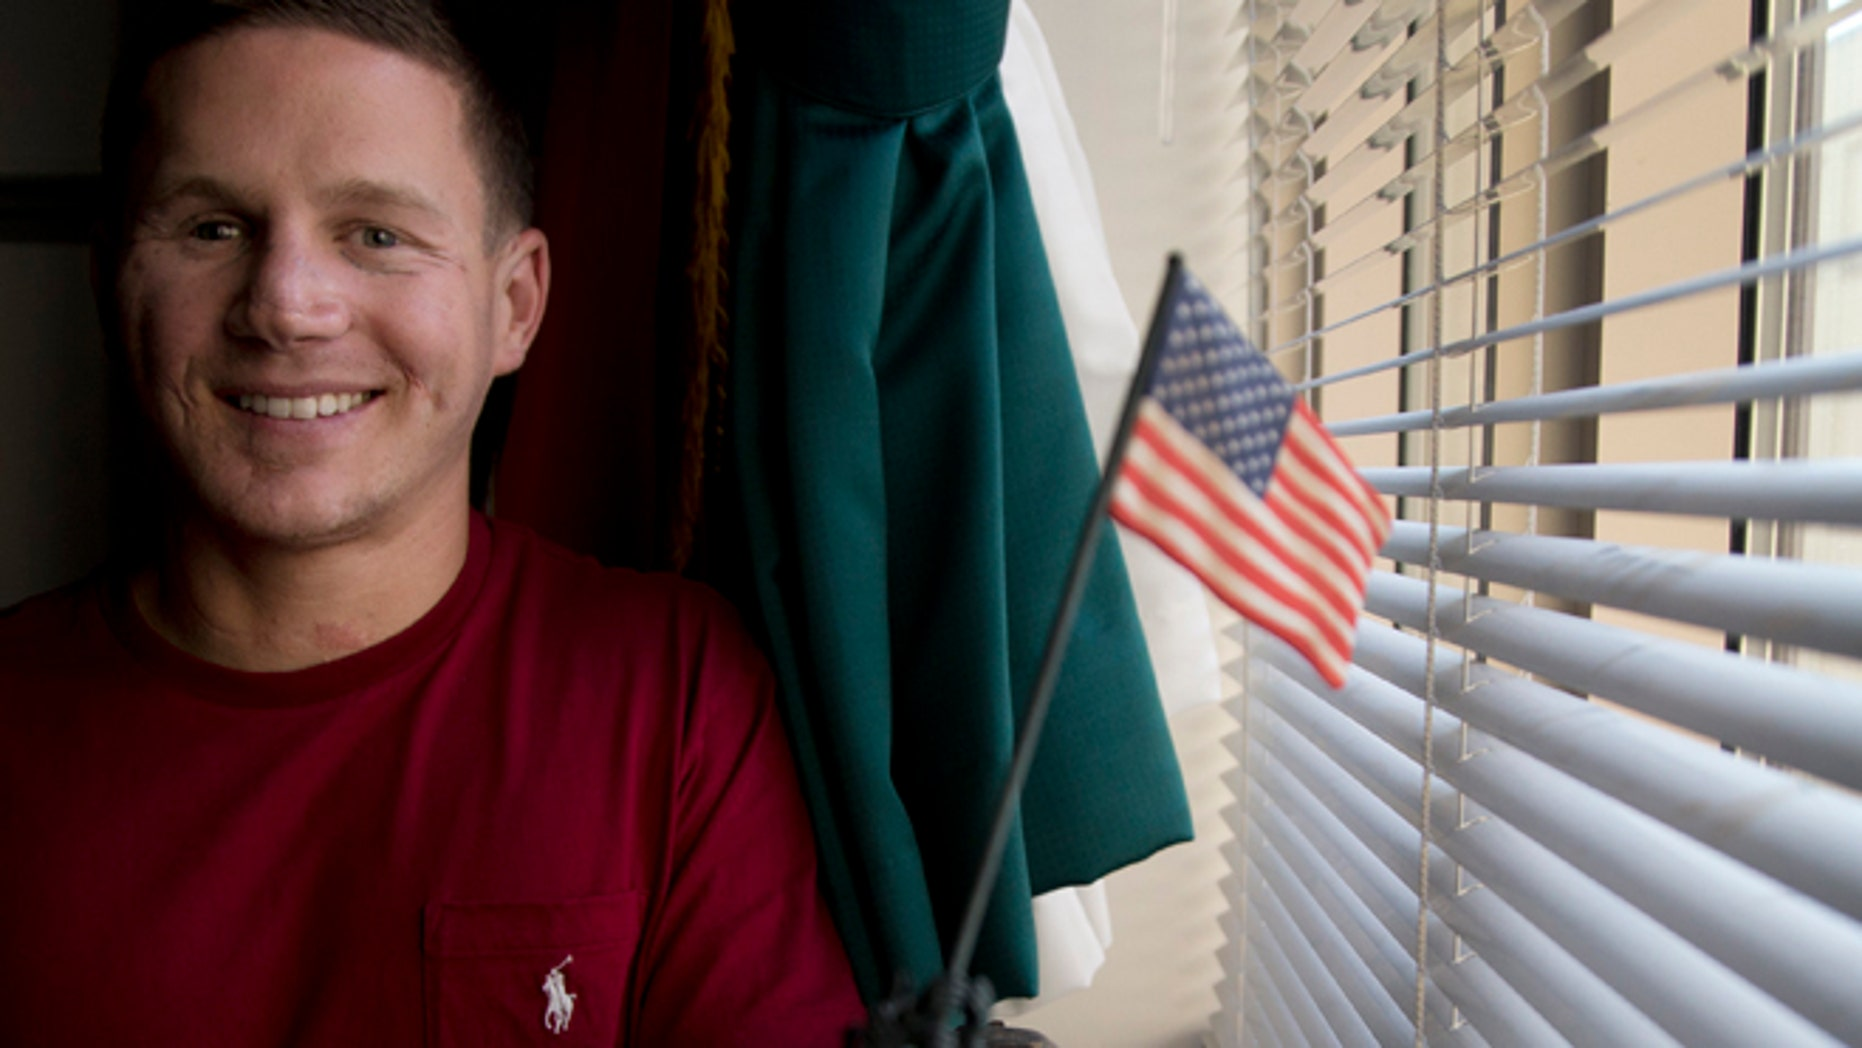 May 13, 2014: Medically retired Marine Lance Cpl. Kyle Carpenter speaks to media at the Pentagon.